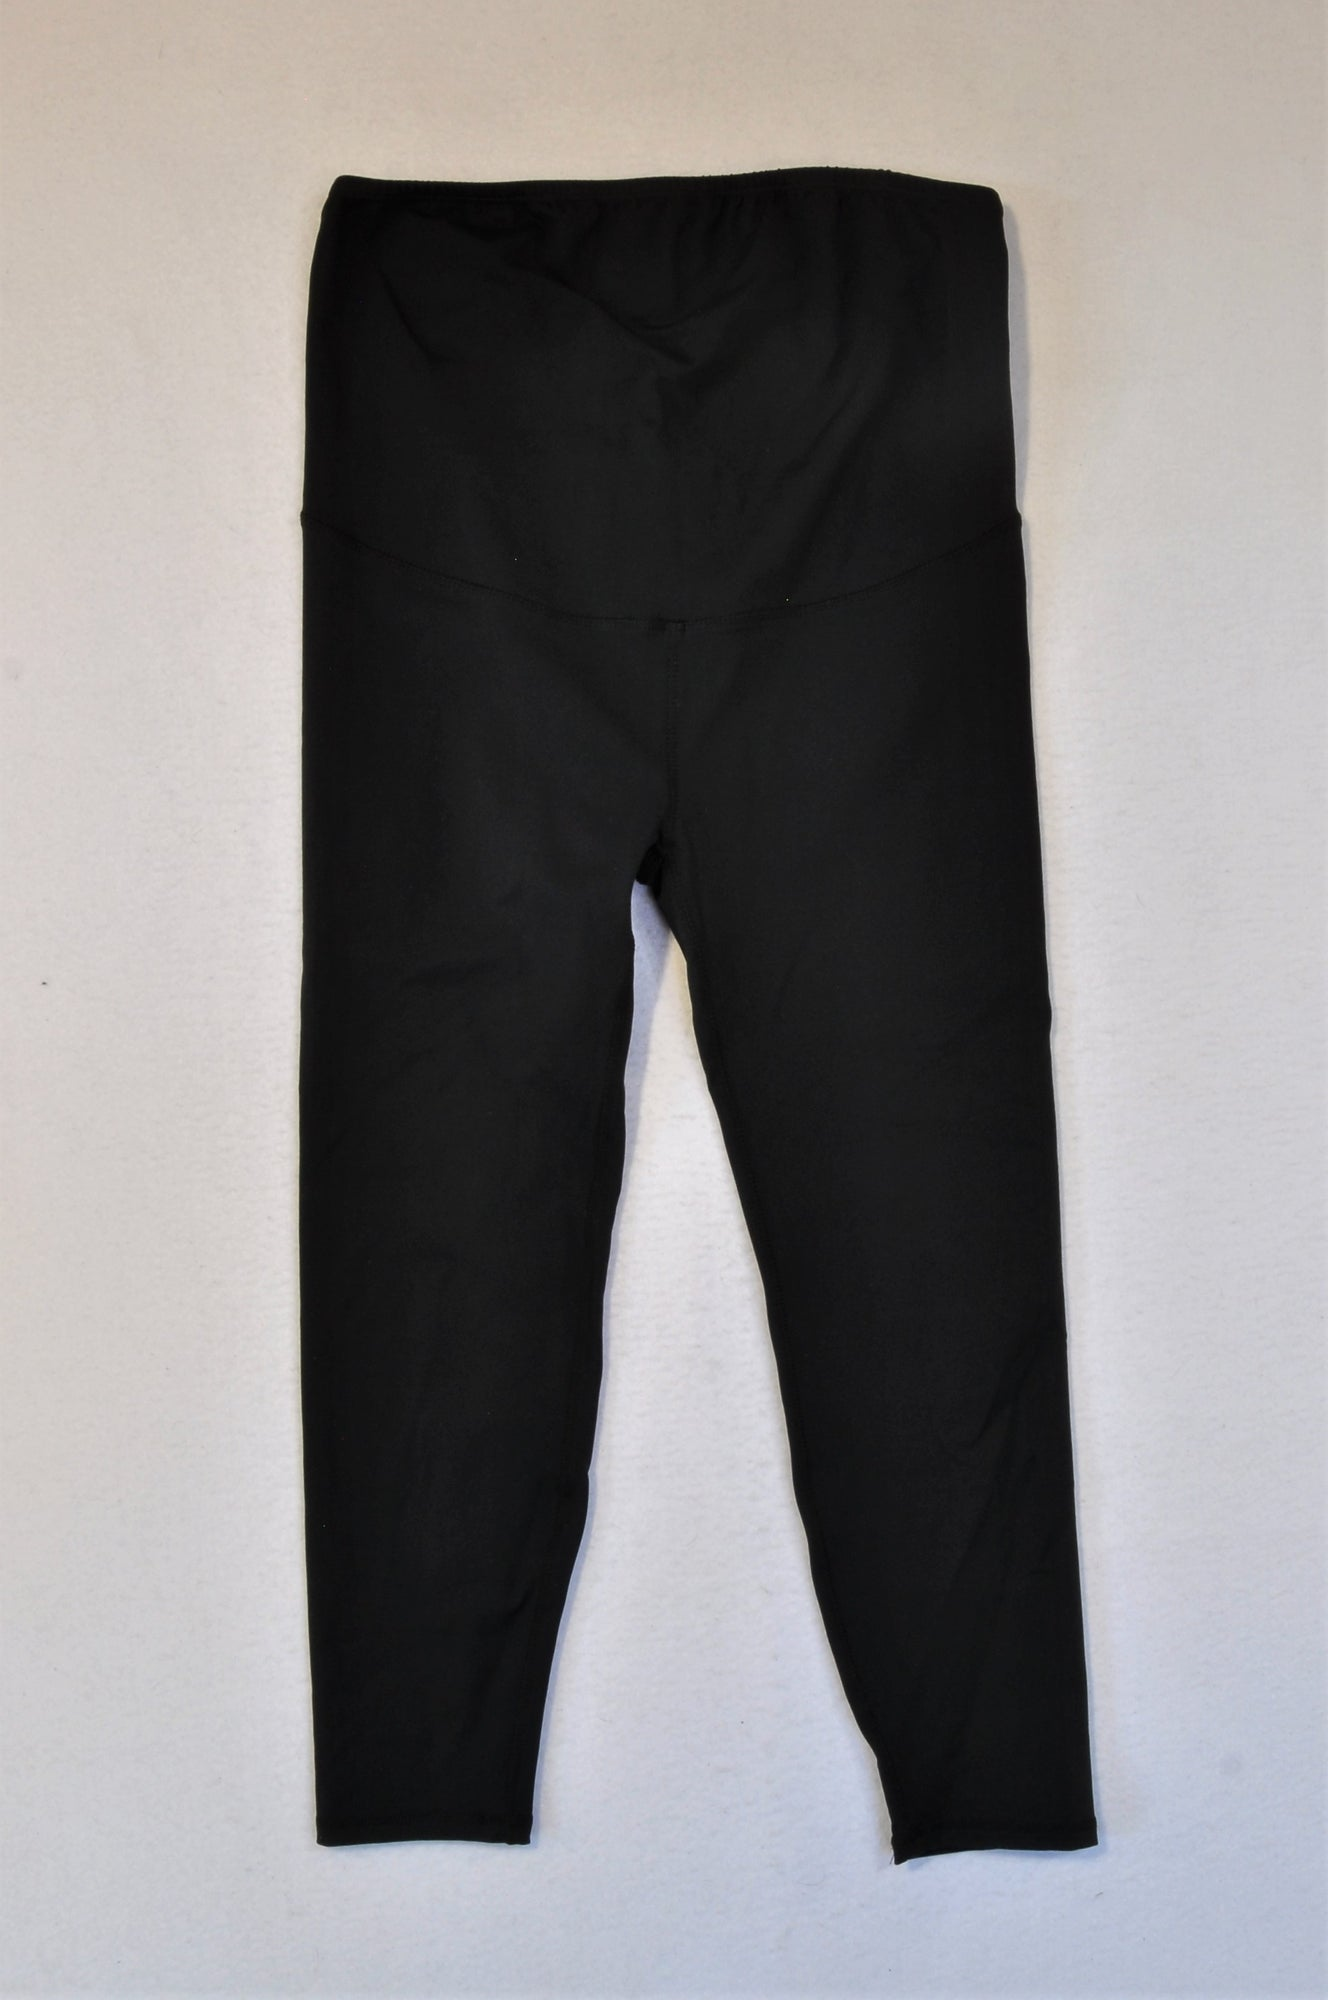 Cotton On Black Banded Maternity Leggings Maternity Size M